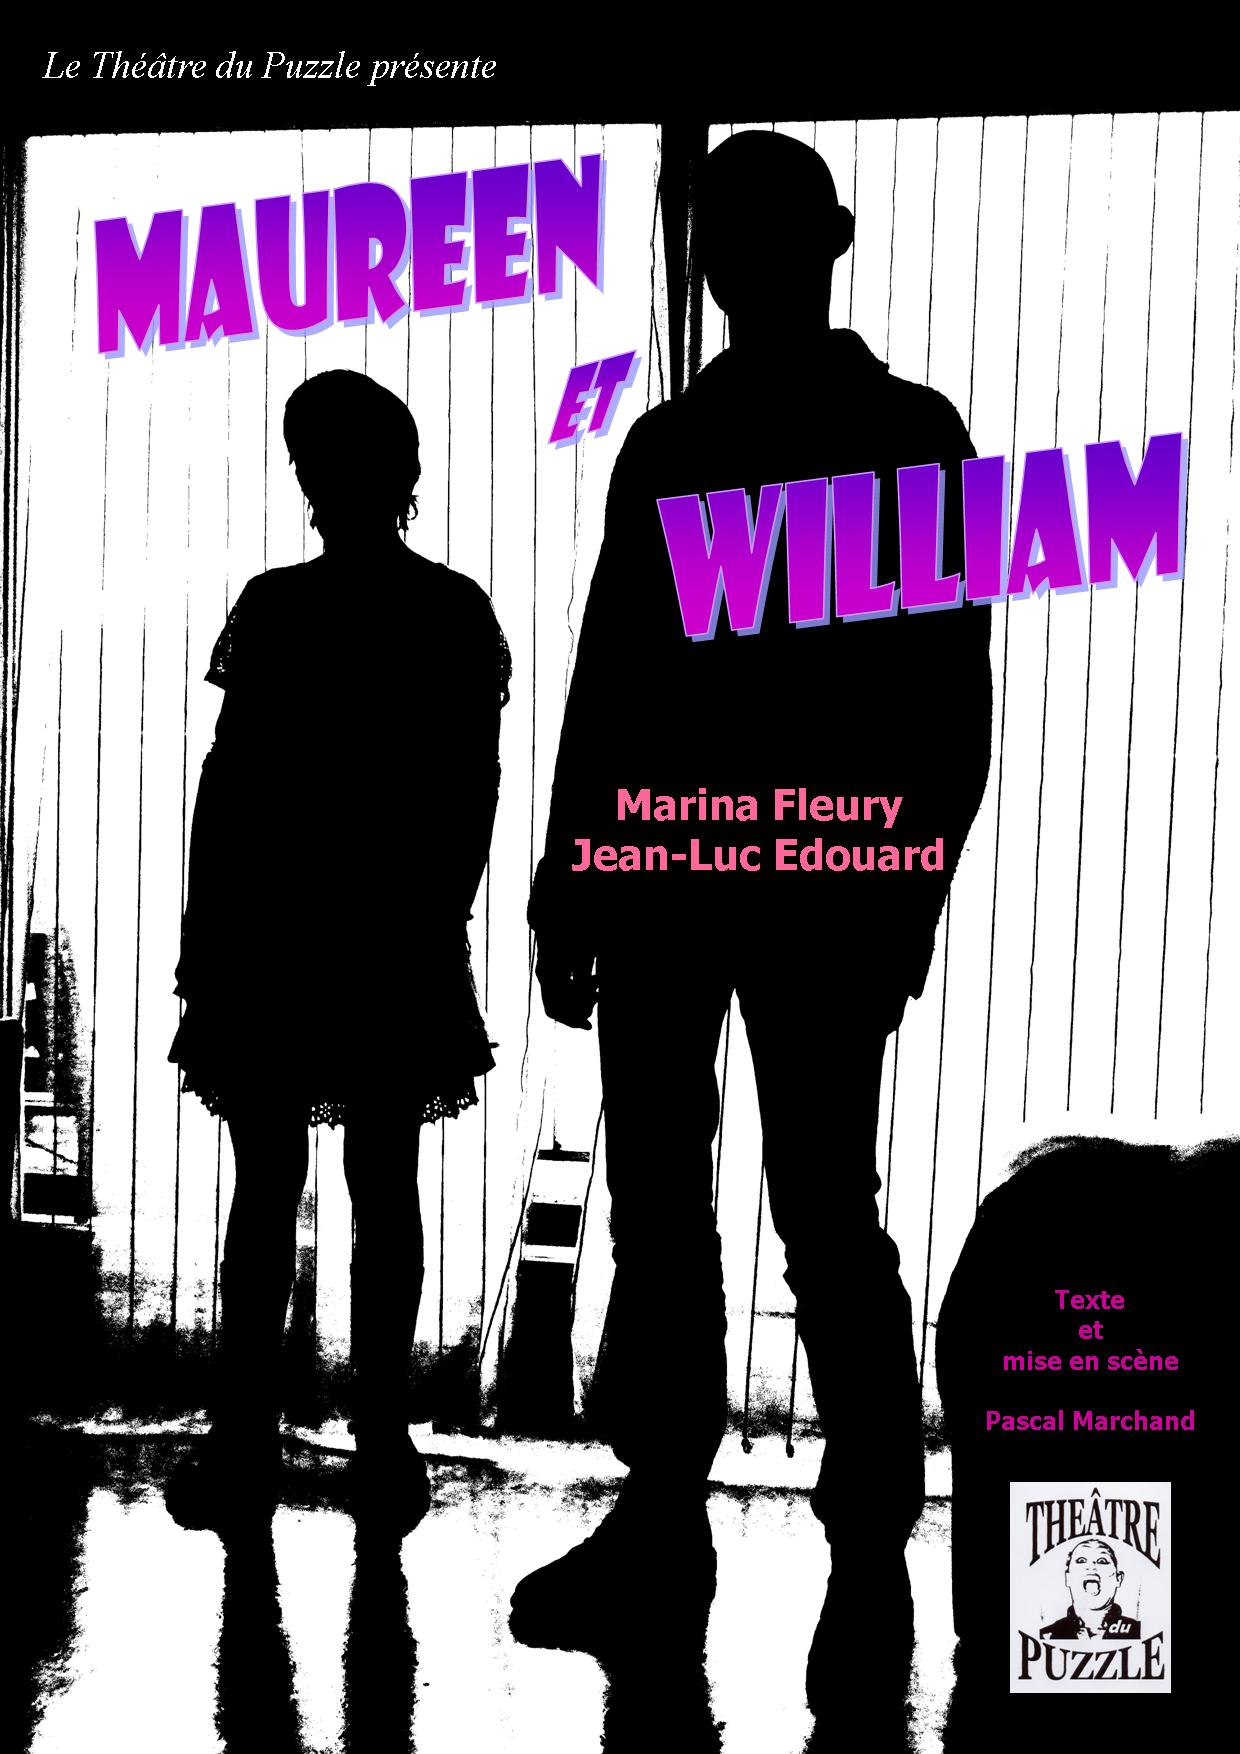 Maureen et William 04.jpg